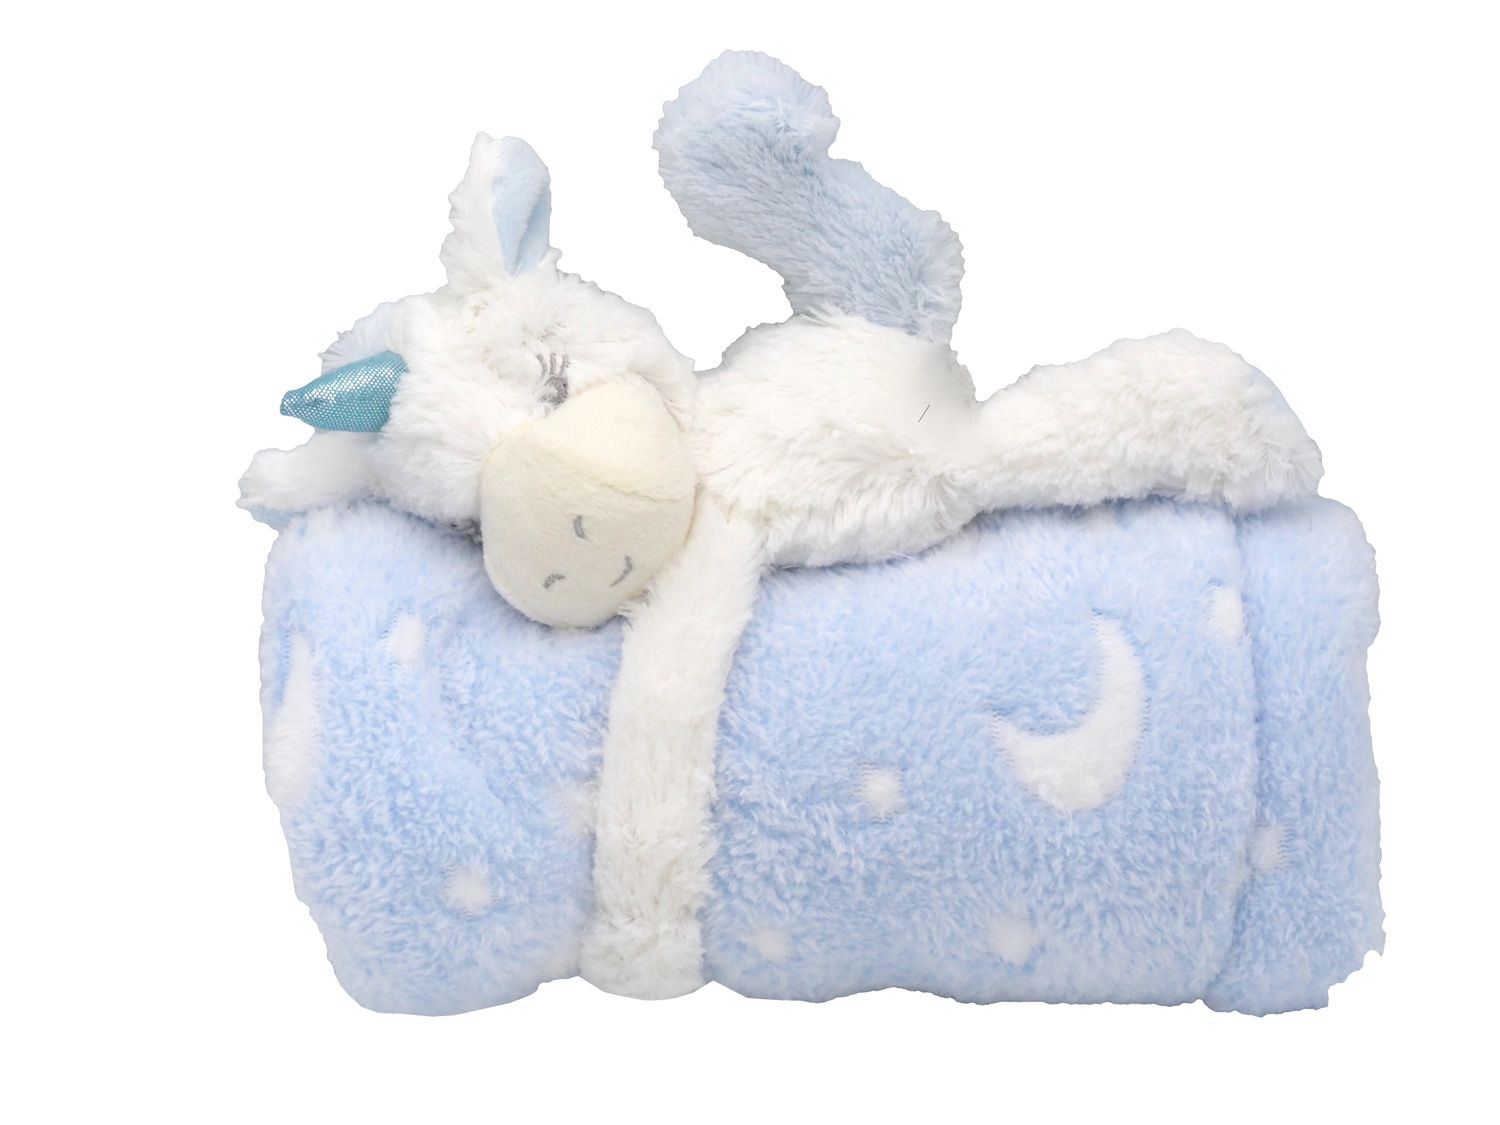 baby kuscheldecke schmusedecke mit einhorn kinder. Black Bedroom Furniture Sets. Home Design Ideas